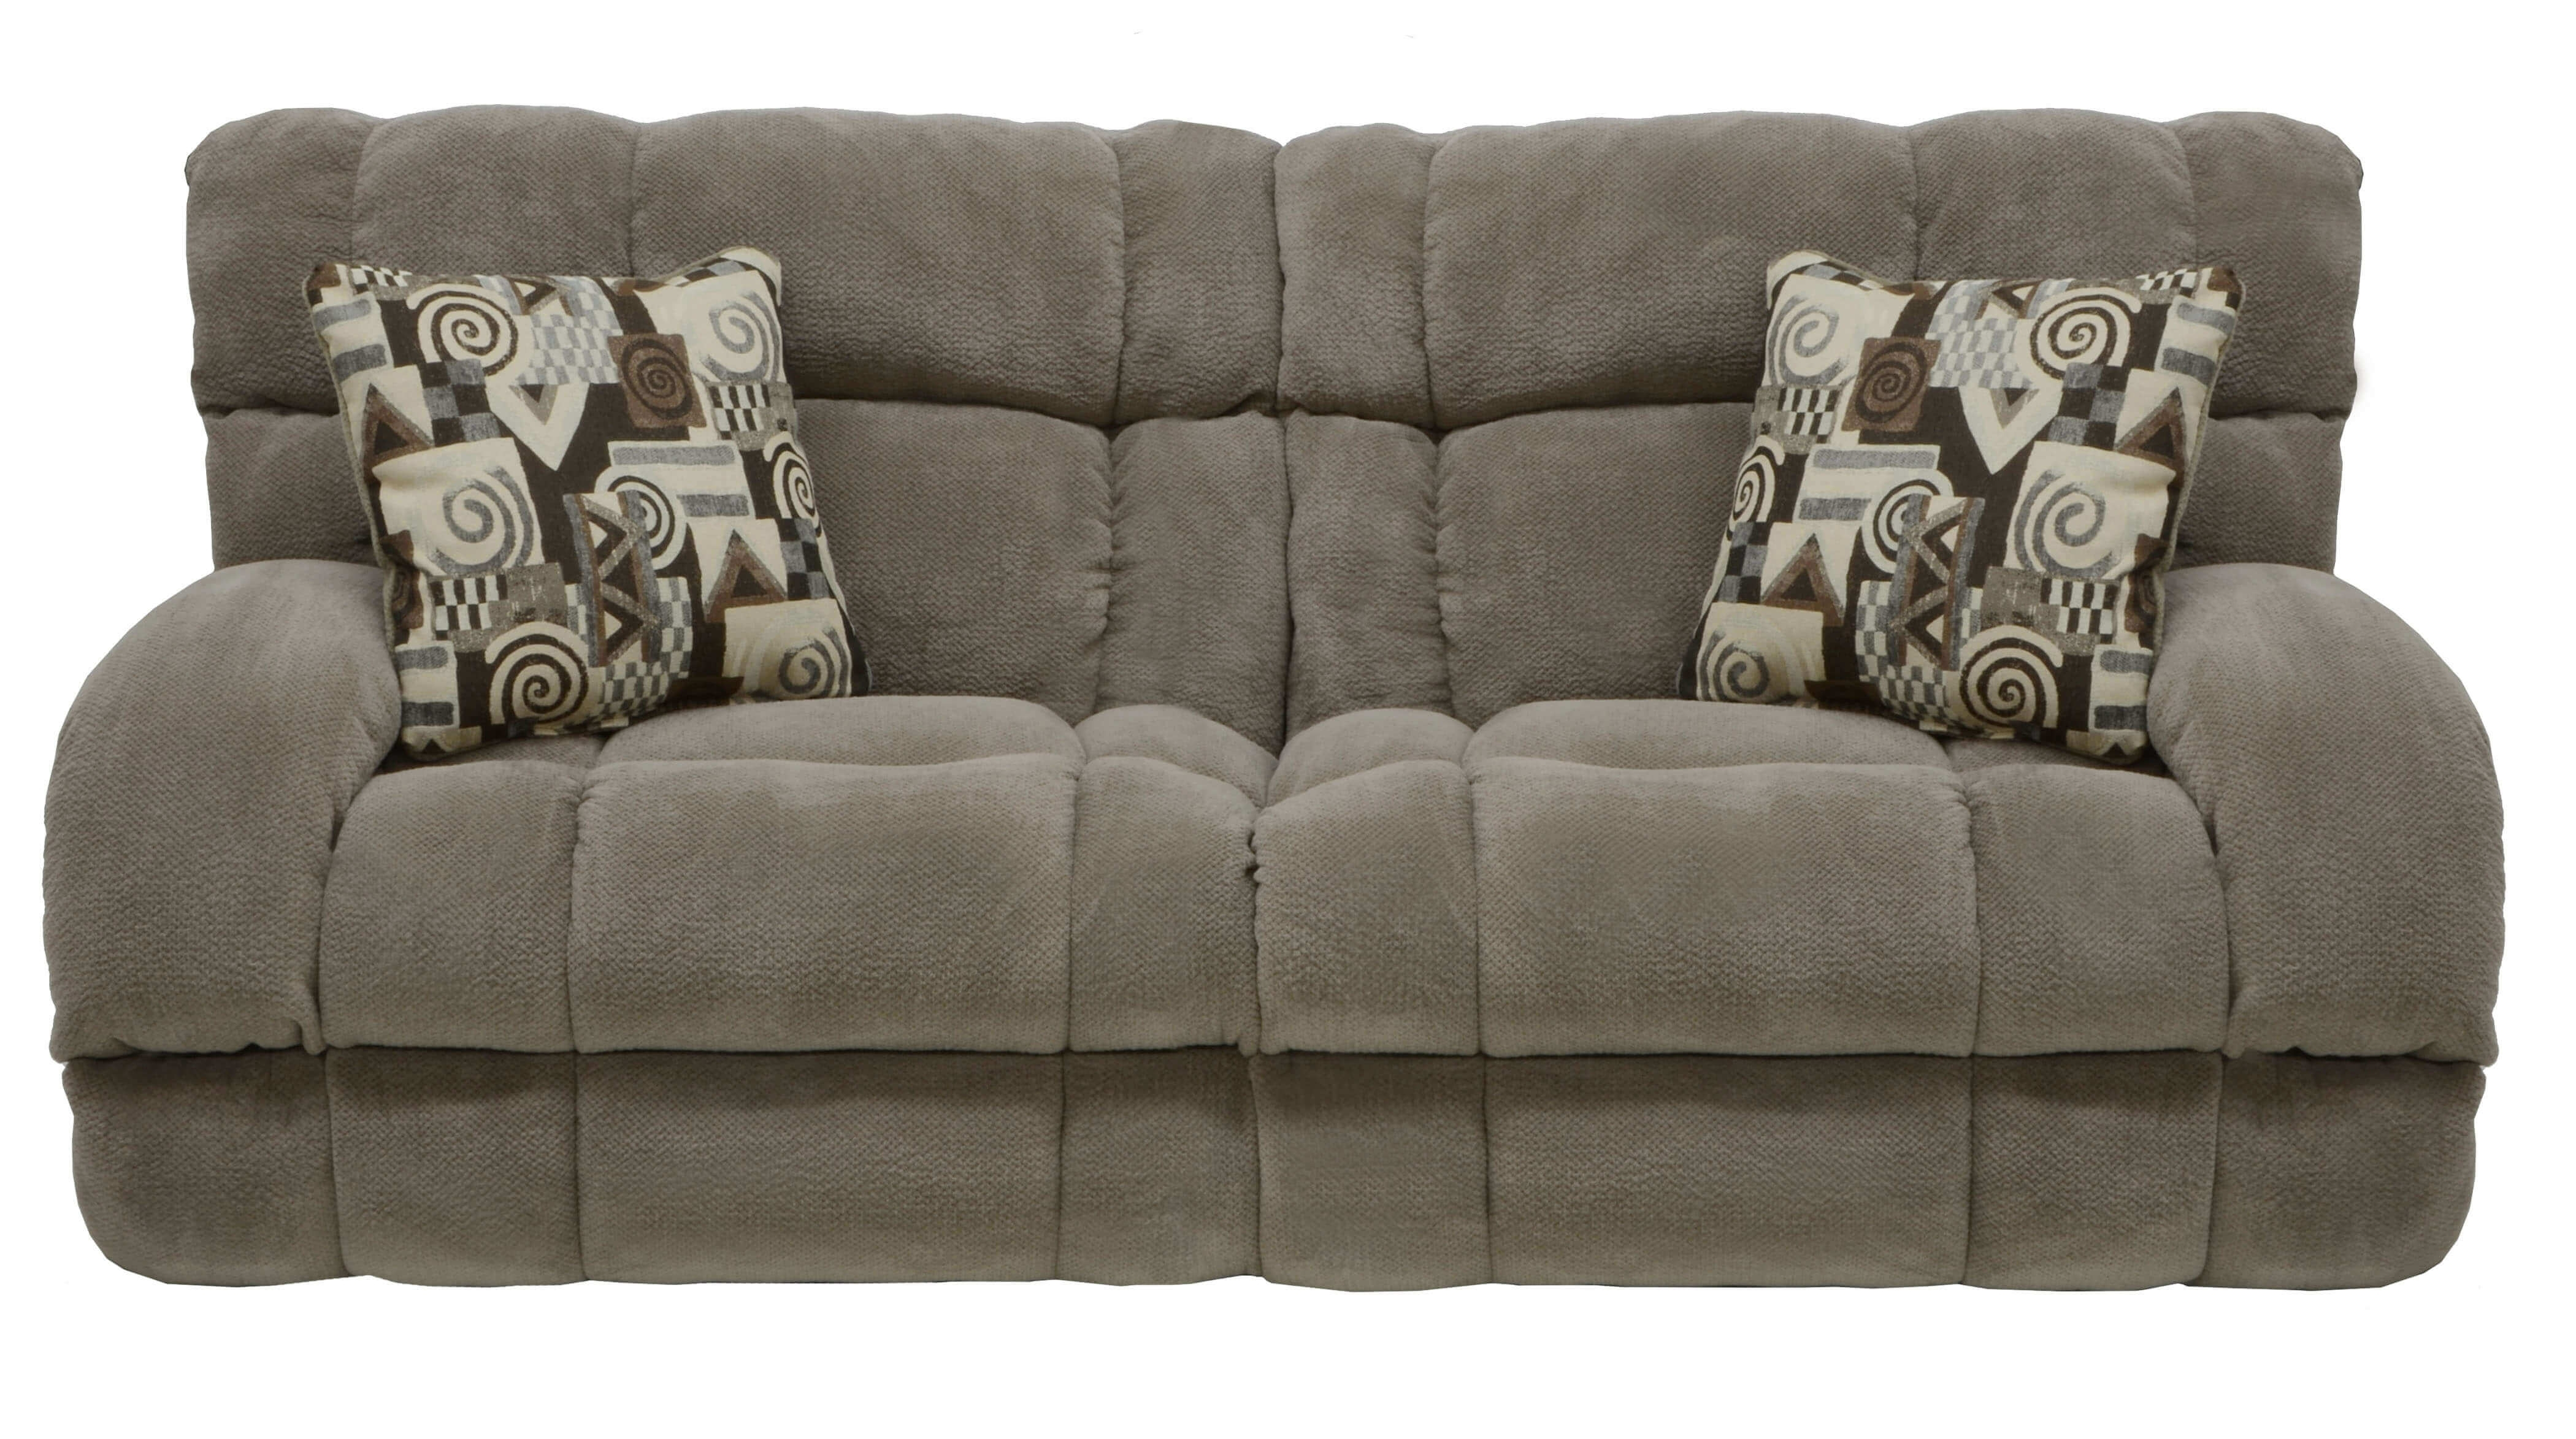 Catnapper Siesta Reclining Sofa | Delano's Furniture And Mattress with regard to Delano Smoke 3 Piece Sectionals (Image 5 of 30)